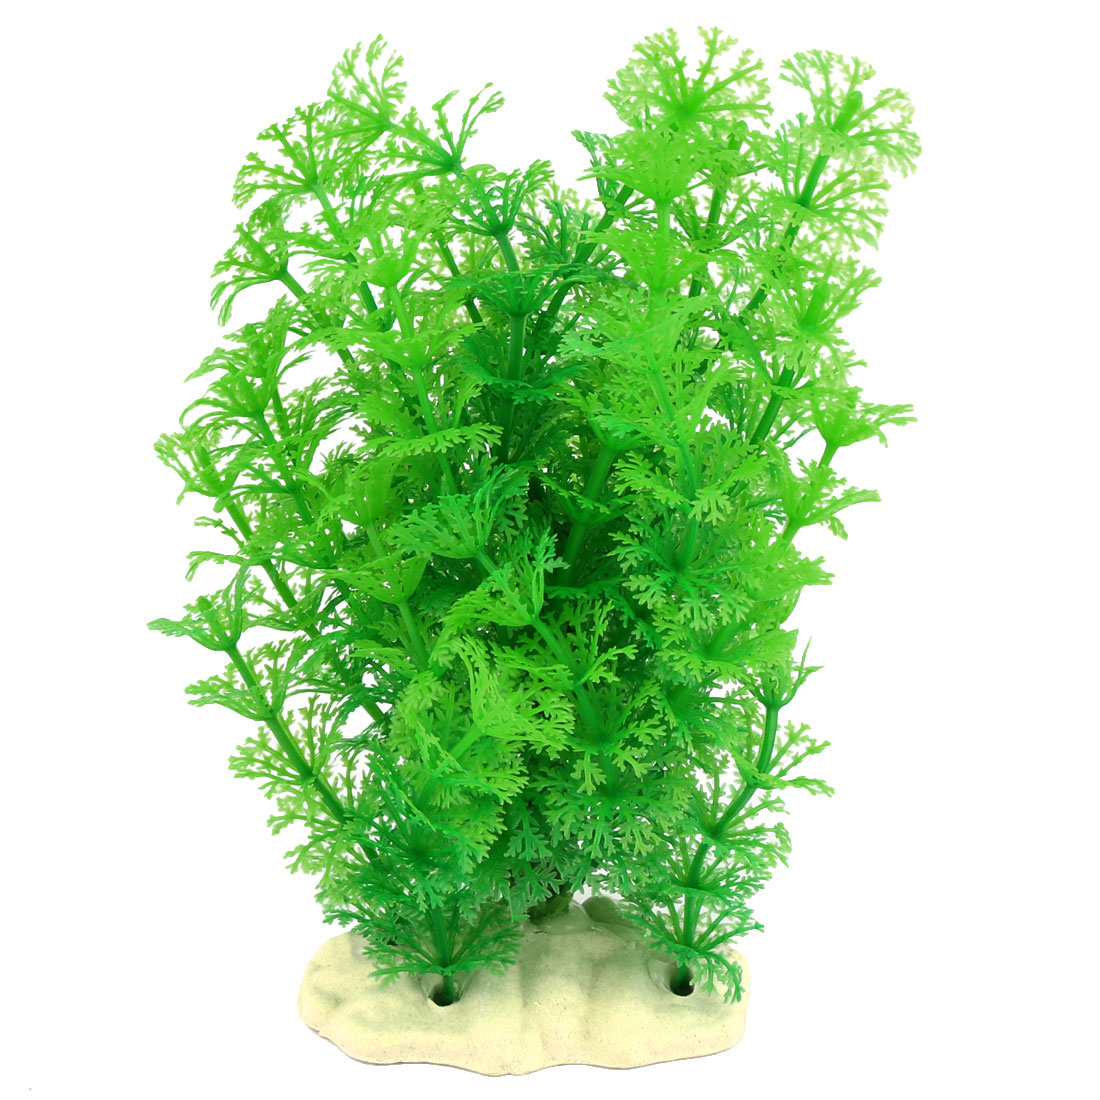 Aquarium Fish Tank Artificial Landscape Plant Tree Decoration Green 20cm Height